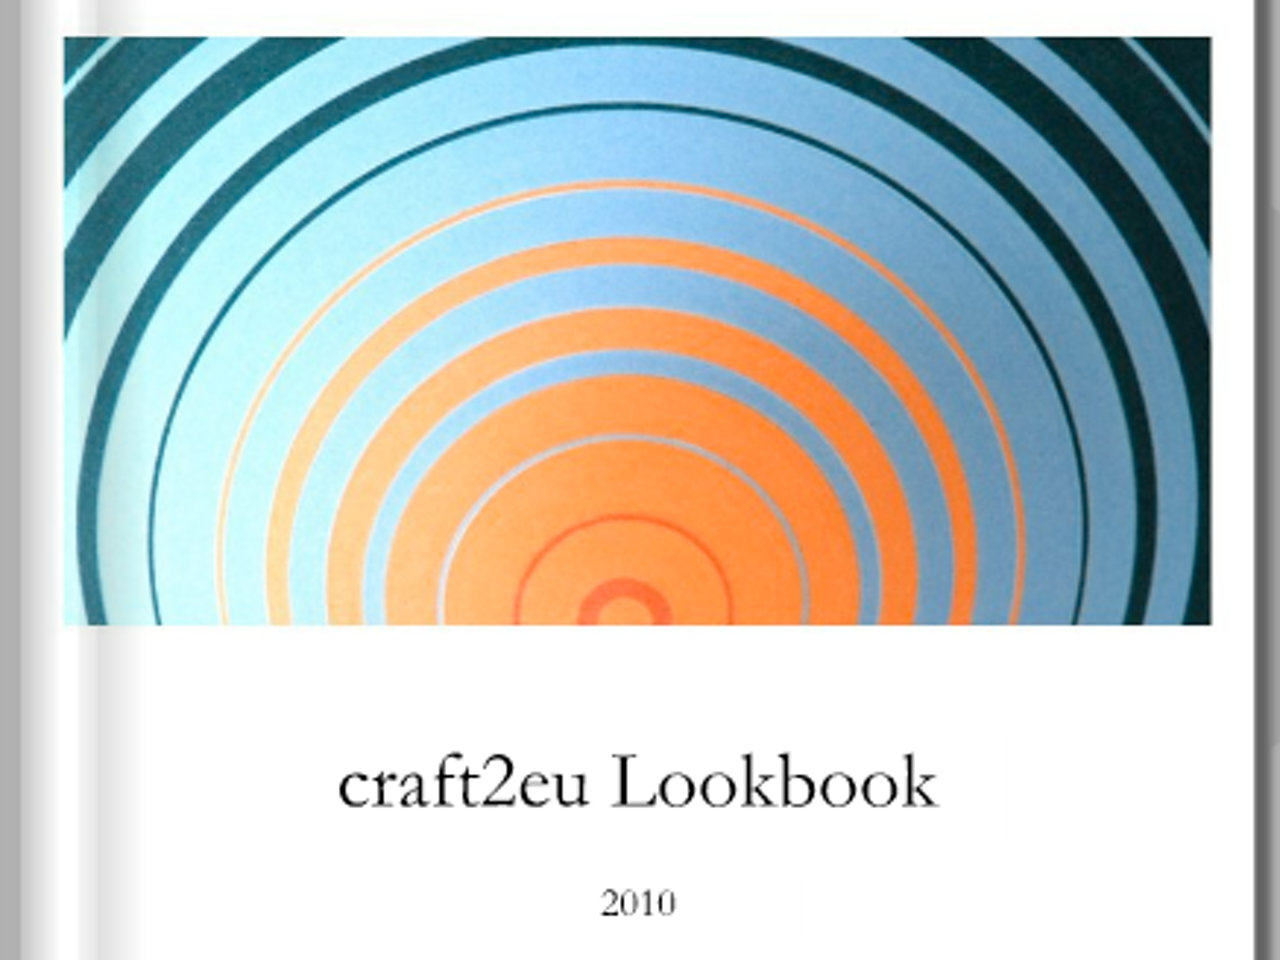 craft2eu LOOKBOOKs 2004-2014